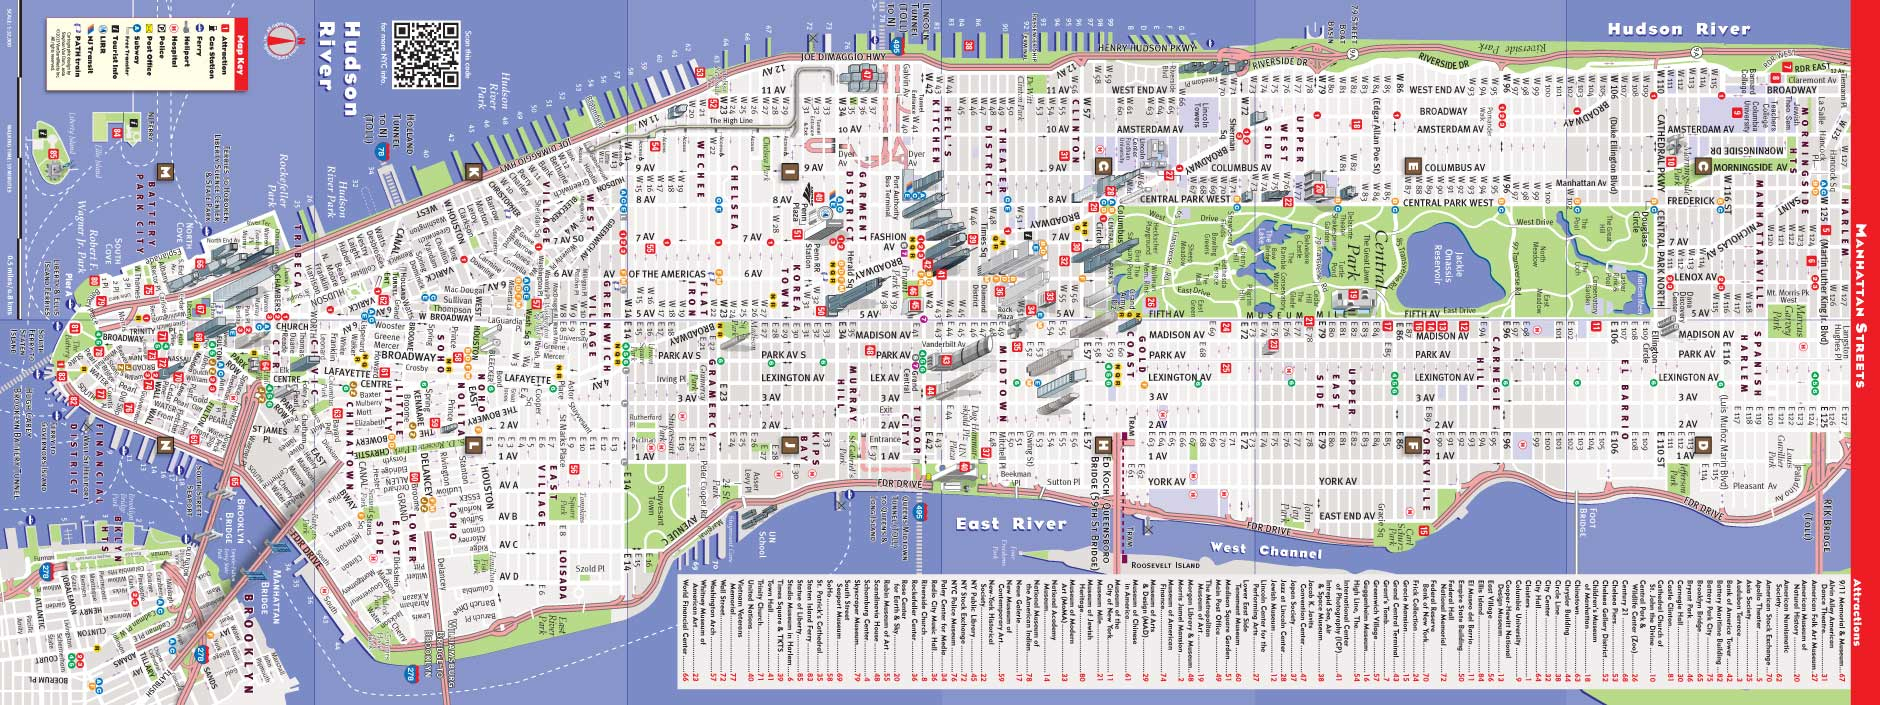 Printable New York Street Map | Travel Maps And Major Tourist - Street Map Of New York City Printable